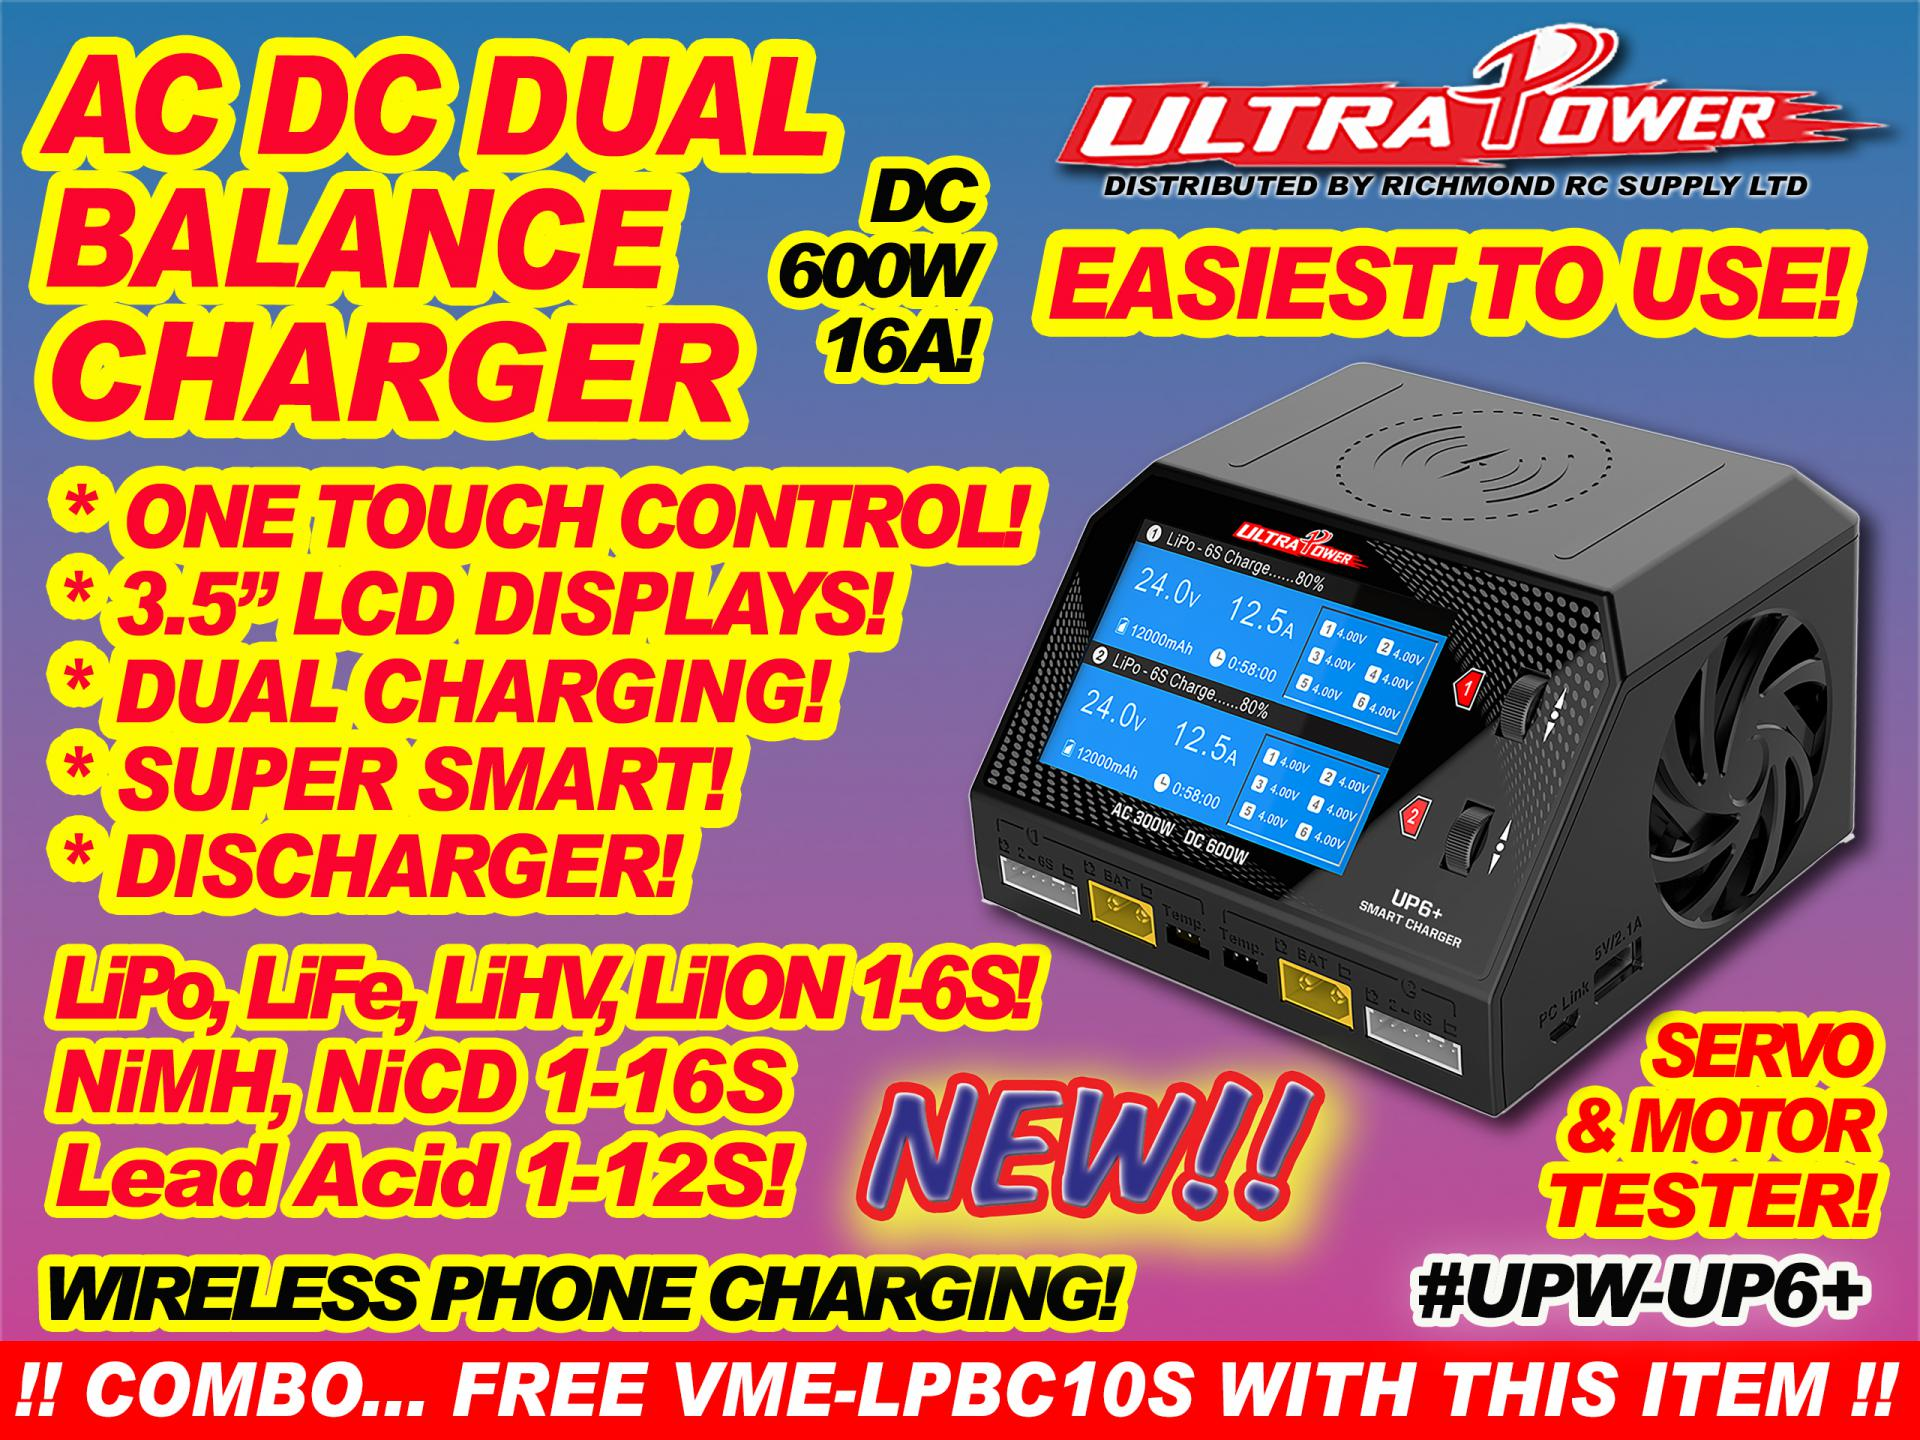 ULTRA POWER CHARGER - AC-DC, 600W 16A DUAL w/LCDx2  [ 21604]